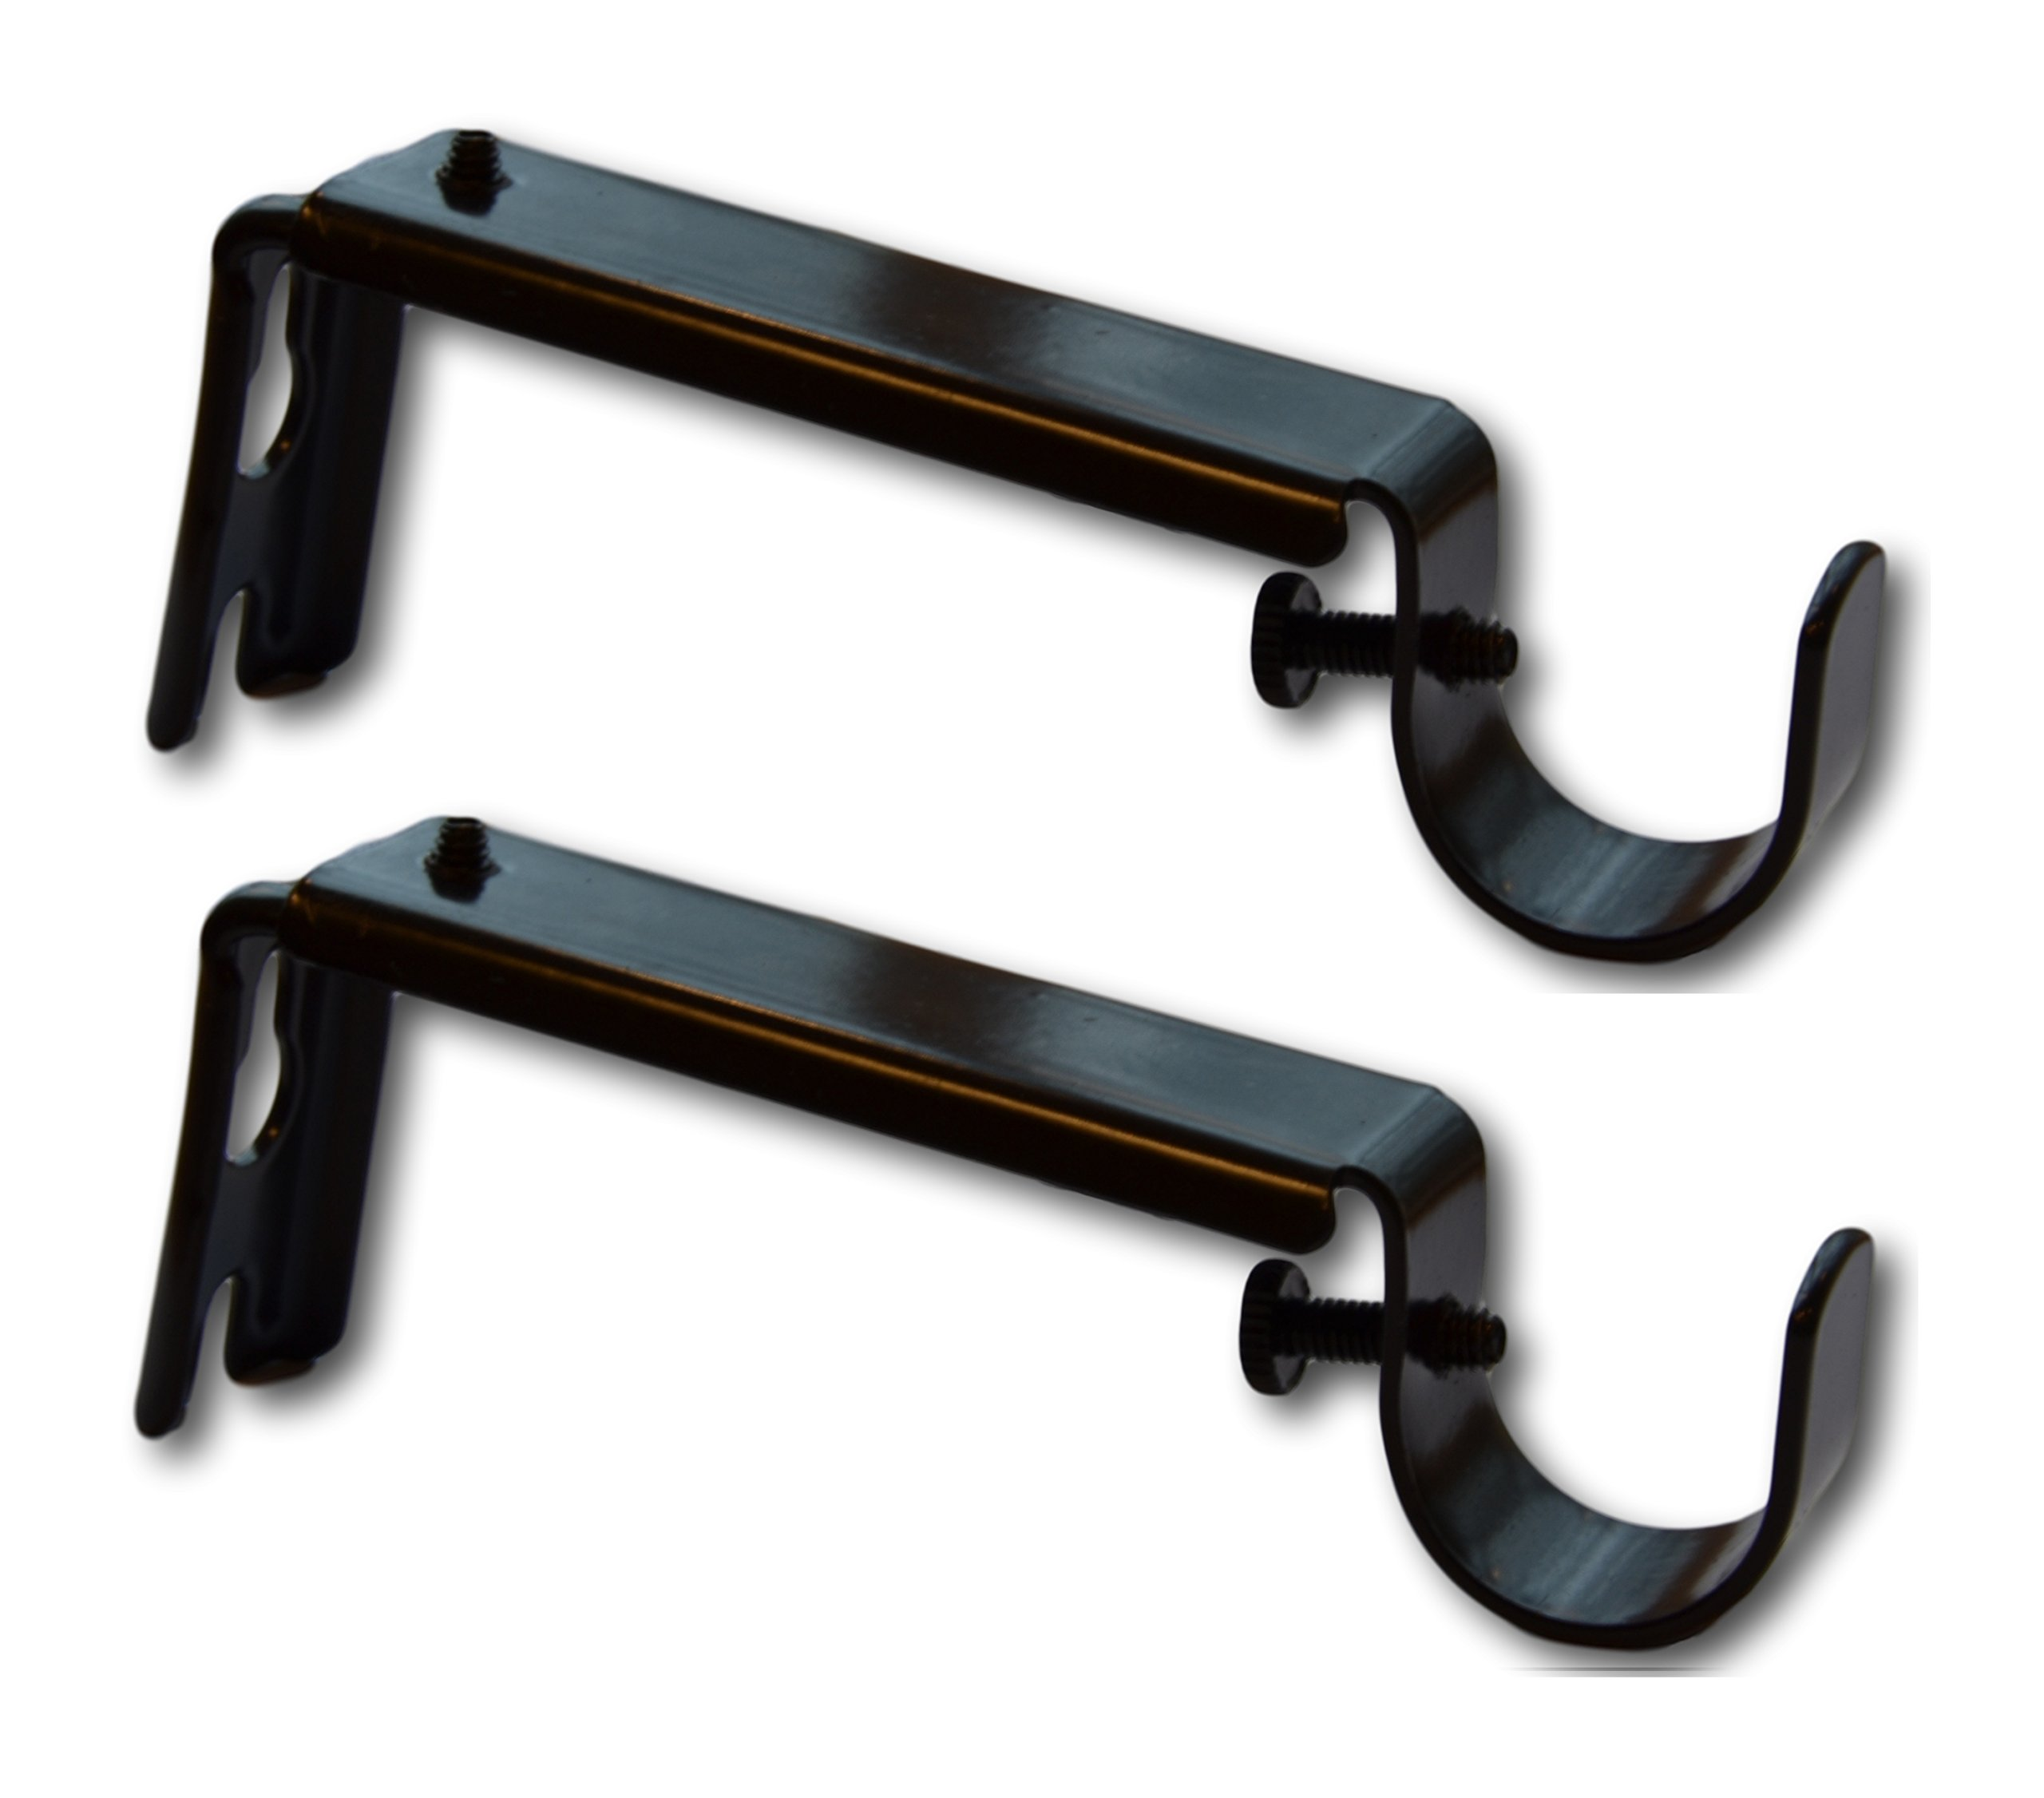 Adjustable Curtain Rod Extension Brackets - ⅝ or ¾ Inch Rod, Oil Rubbed Bronze